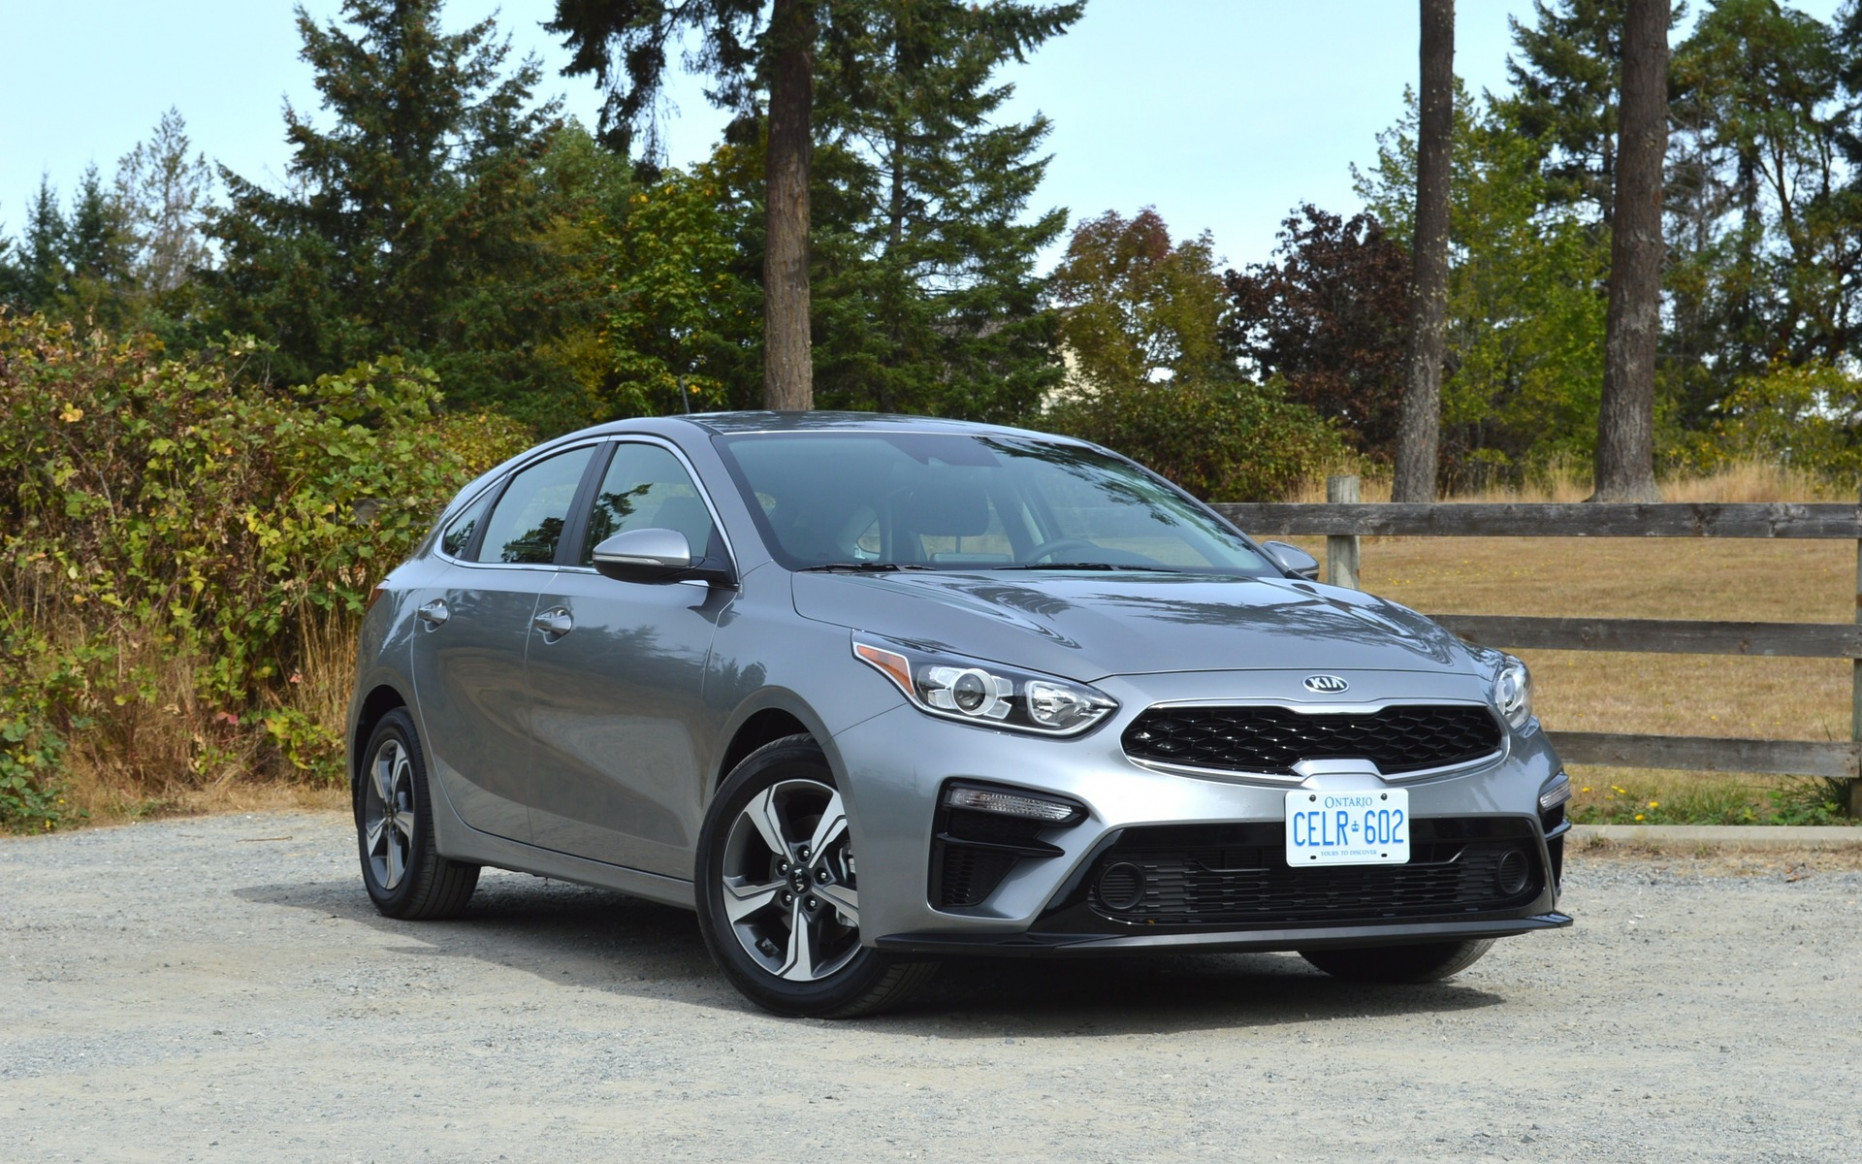 7 Kia Forte7: A Hot New Hatchback Exclusive to Canada - The Car ..